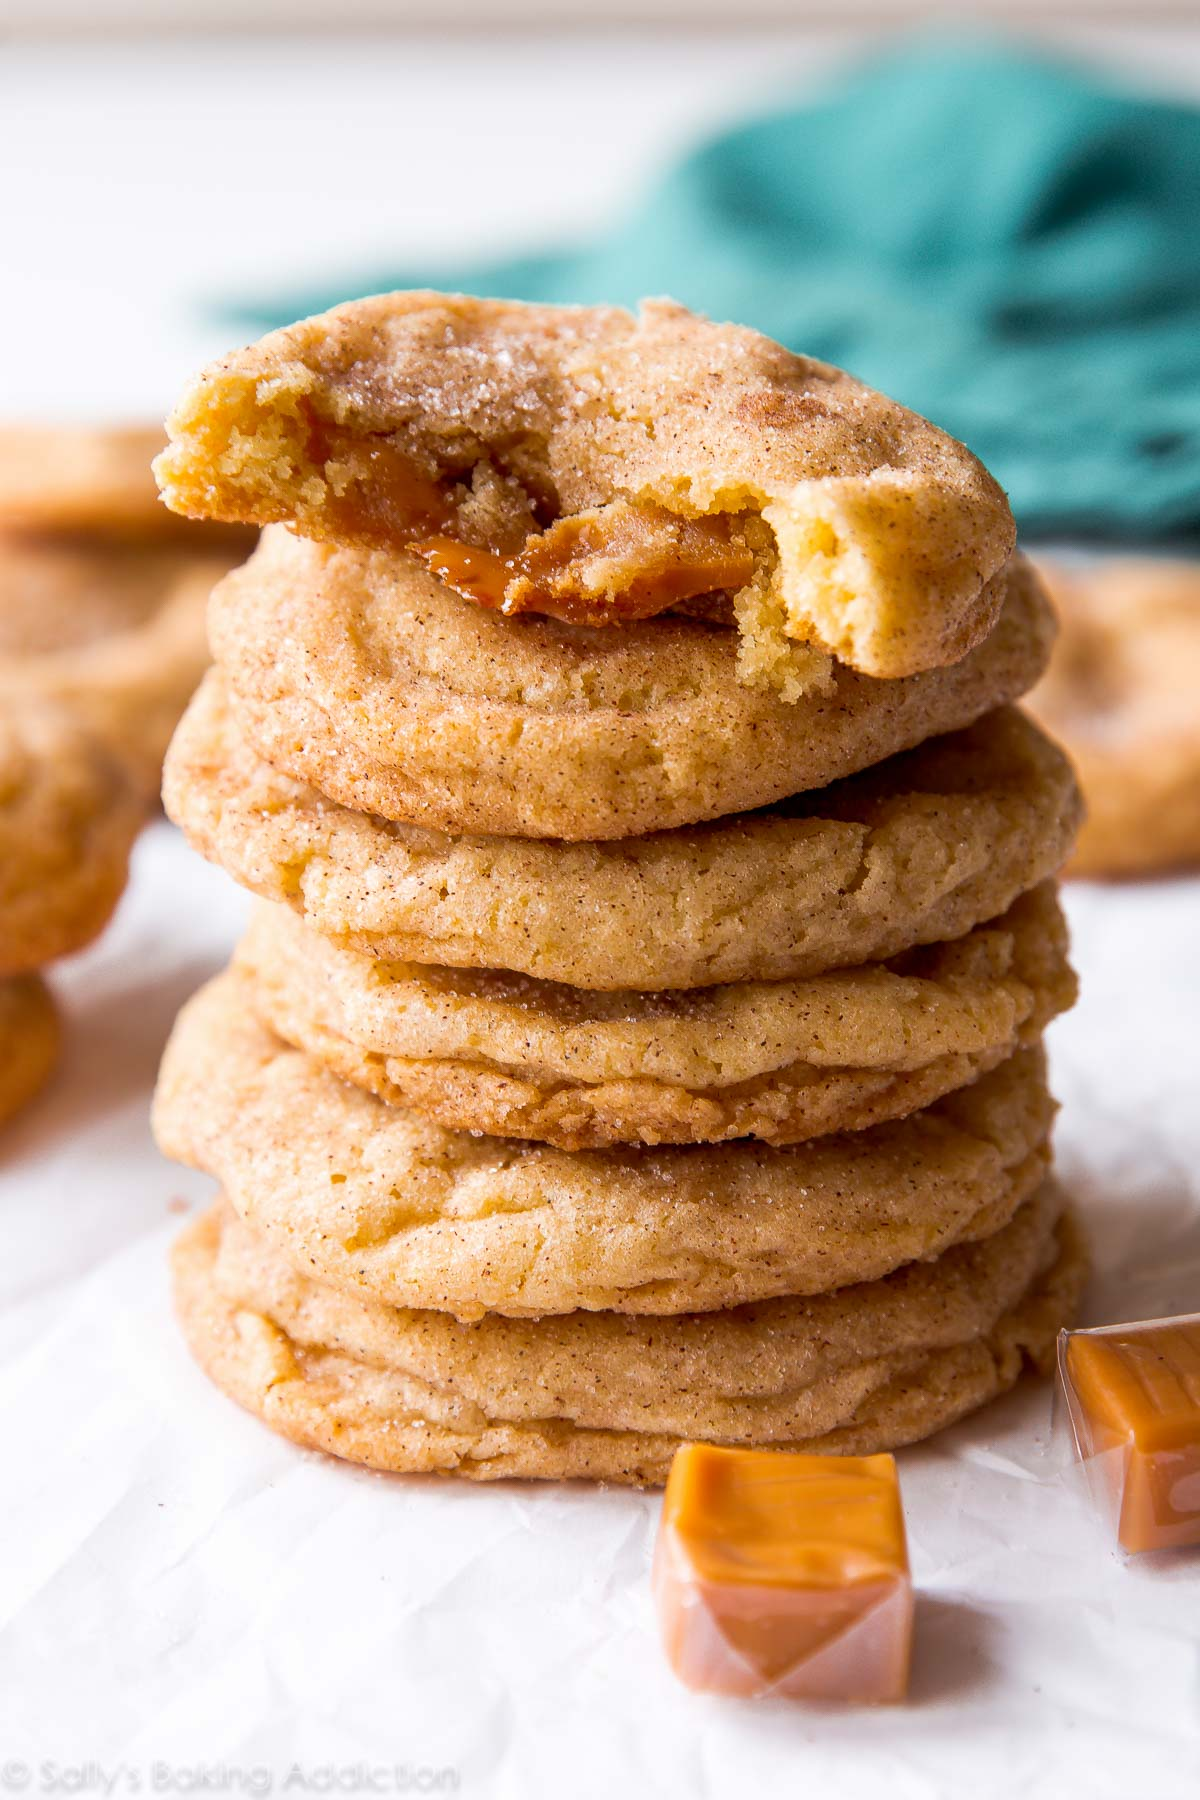 Pillowy soft caramel snickerdoodles with chewy edges and a caramel surprise inside! Recipe on sallysbakingaddiction.com